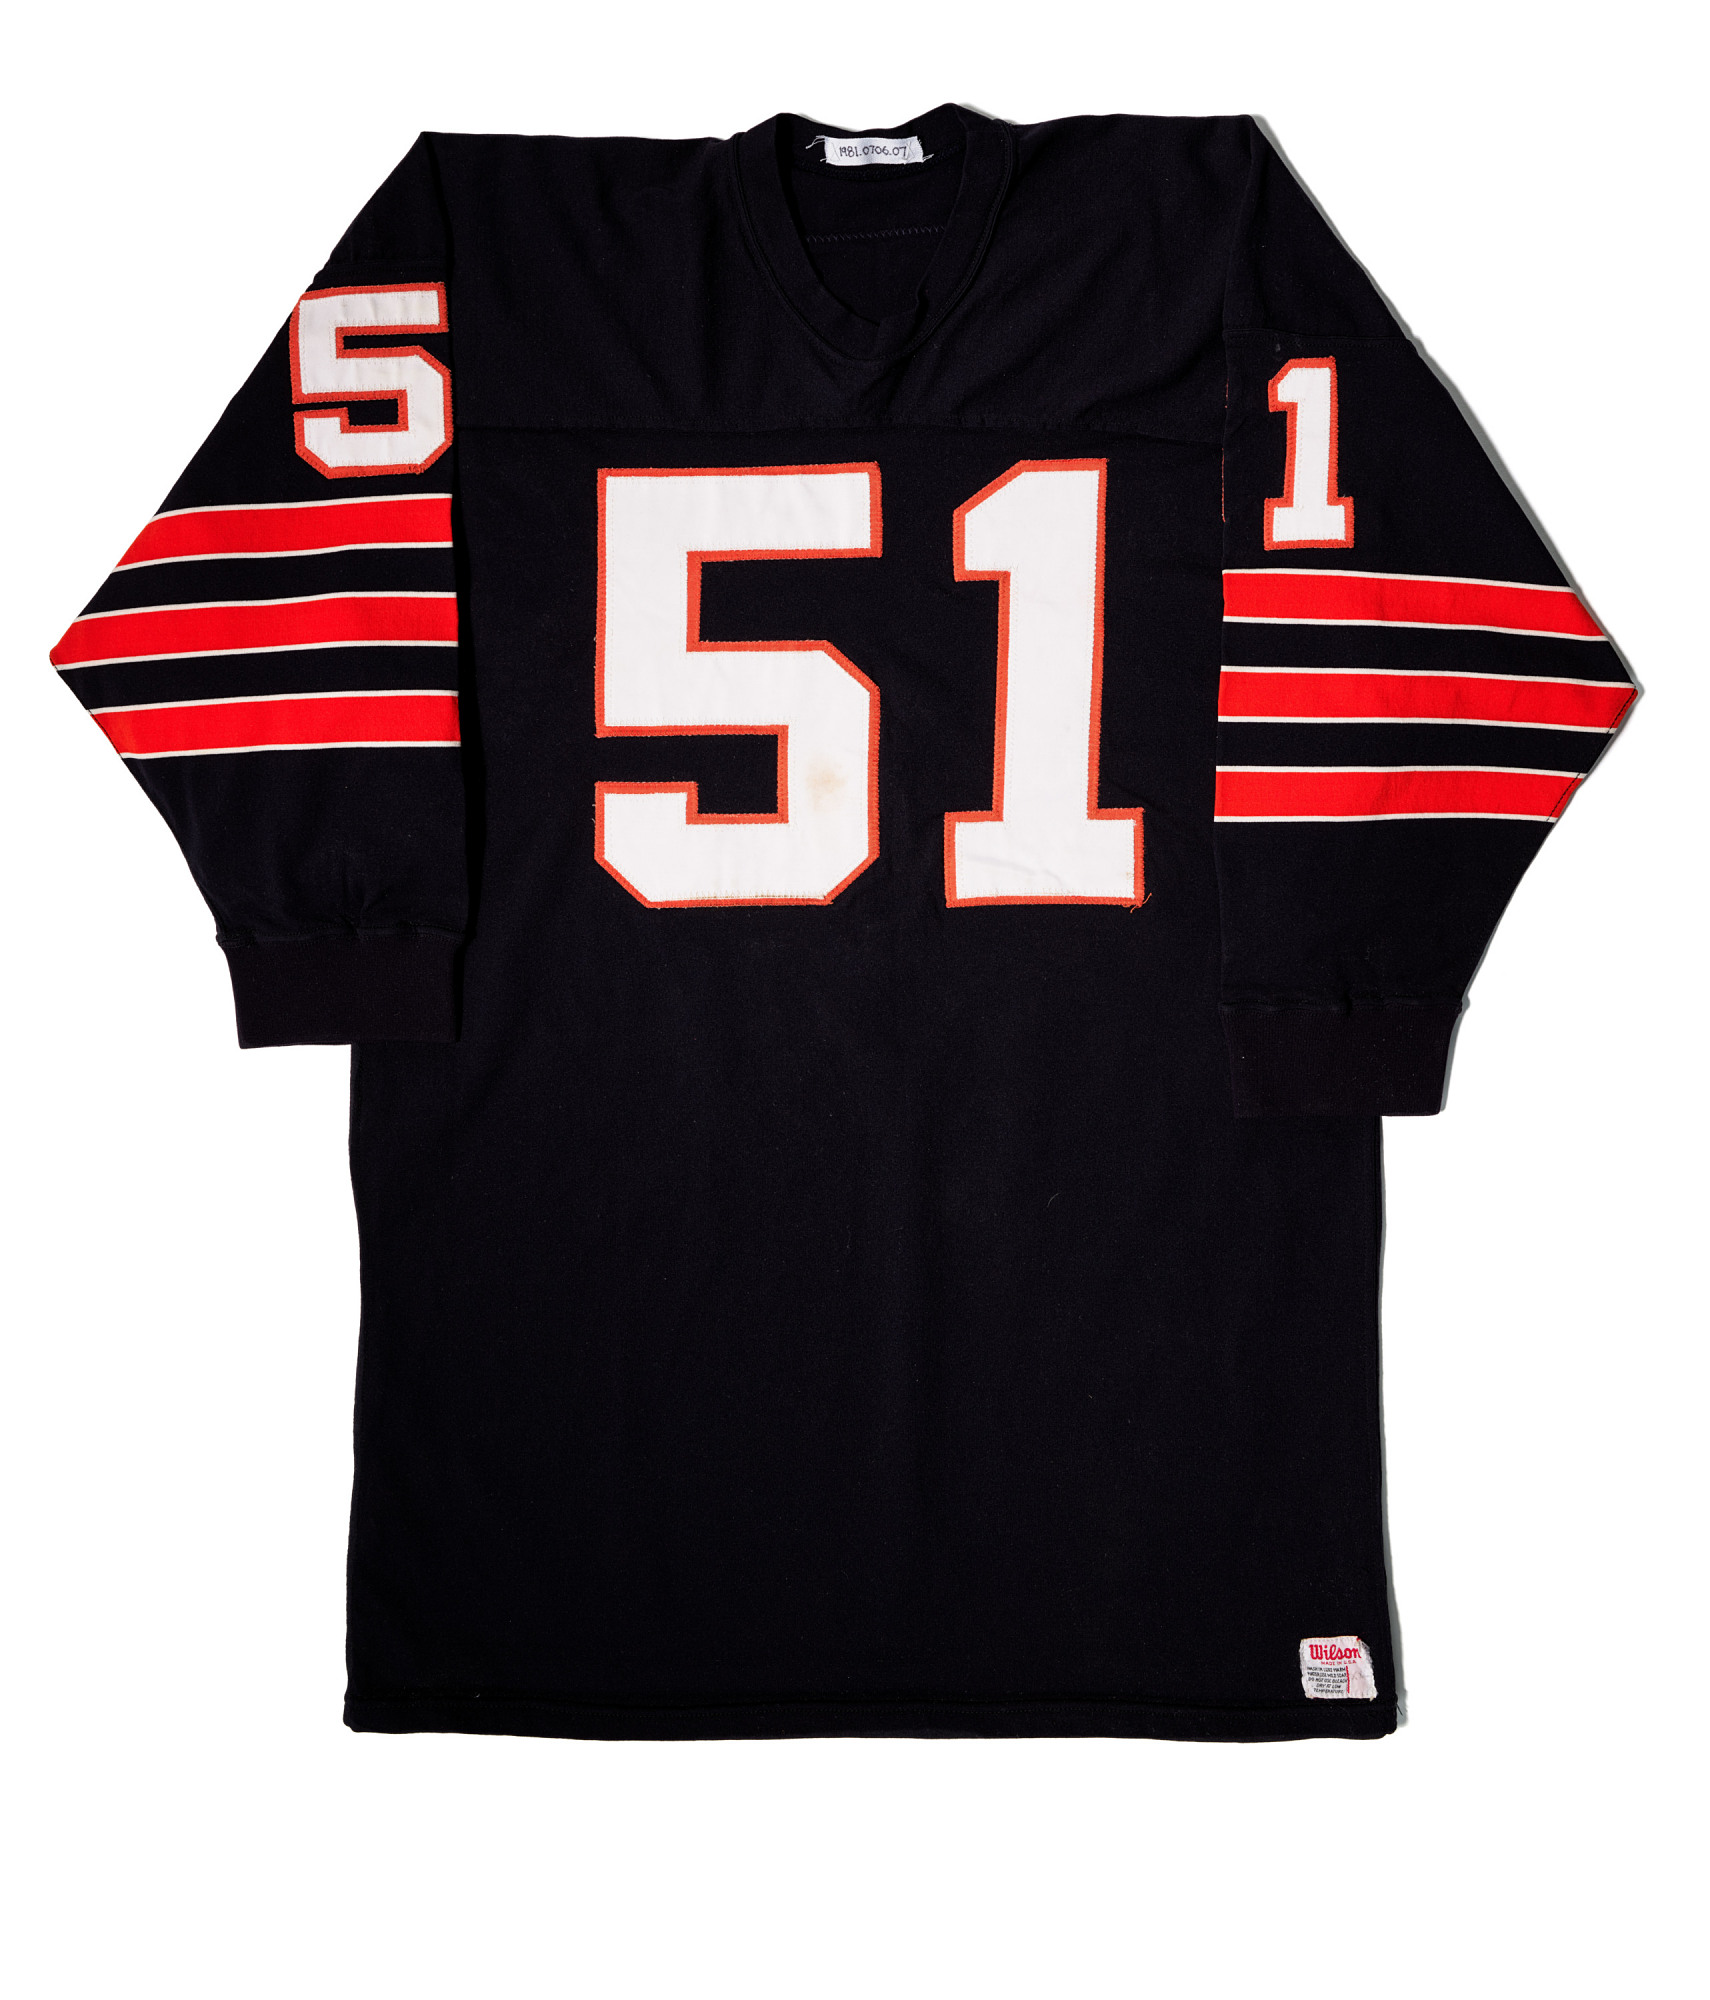 Chicago Bears Football jersey, worn by Dick Butkus | Smithsonian ...